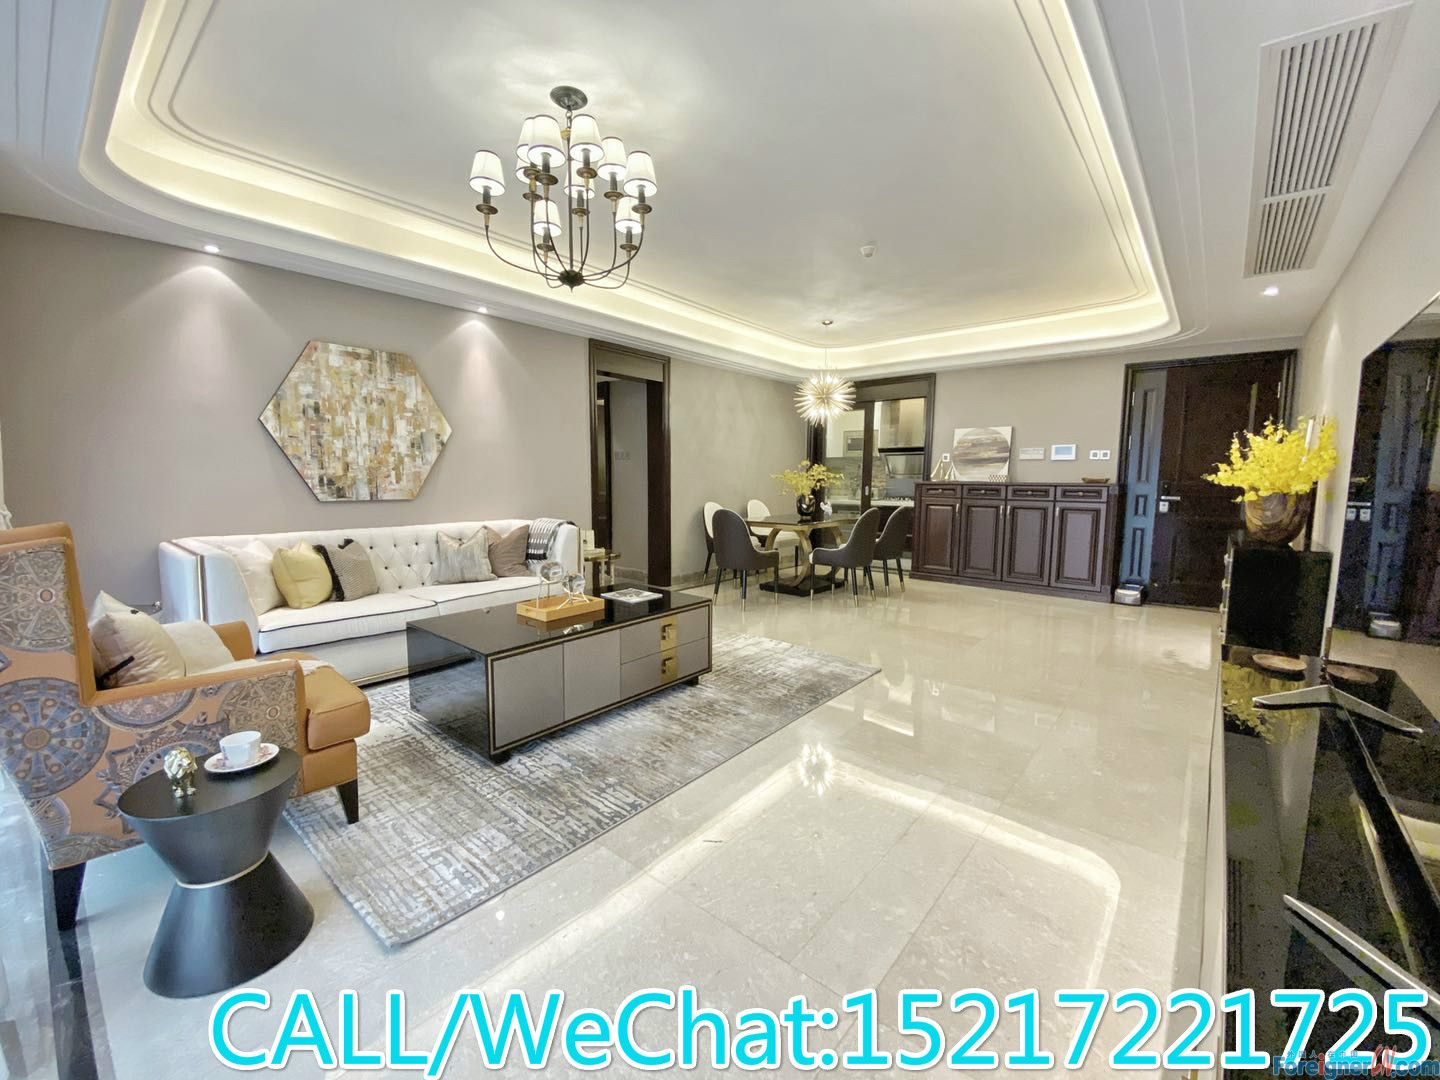 The East-Brand New decoration/High quality furnitures/High floor/CBD AREA/Super convenient.